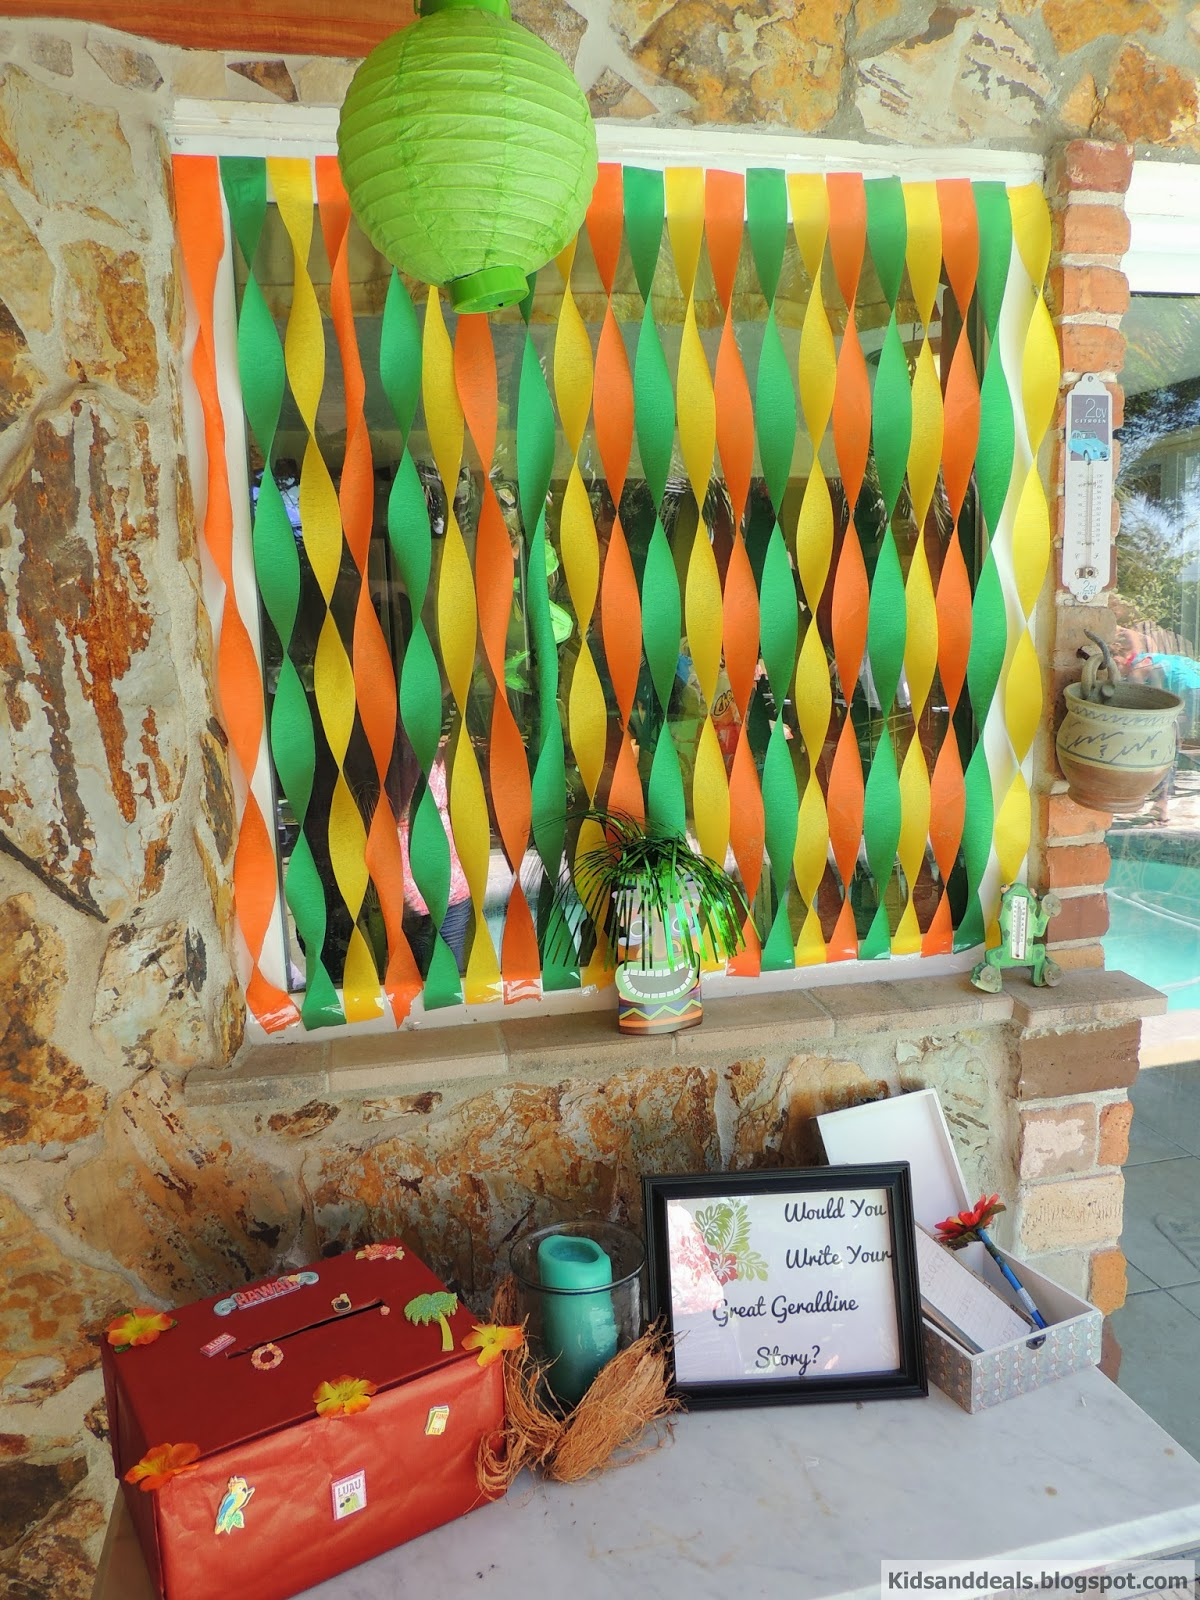 Kids and deals luau 60th birthday party for 60th party decoration ideas